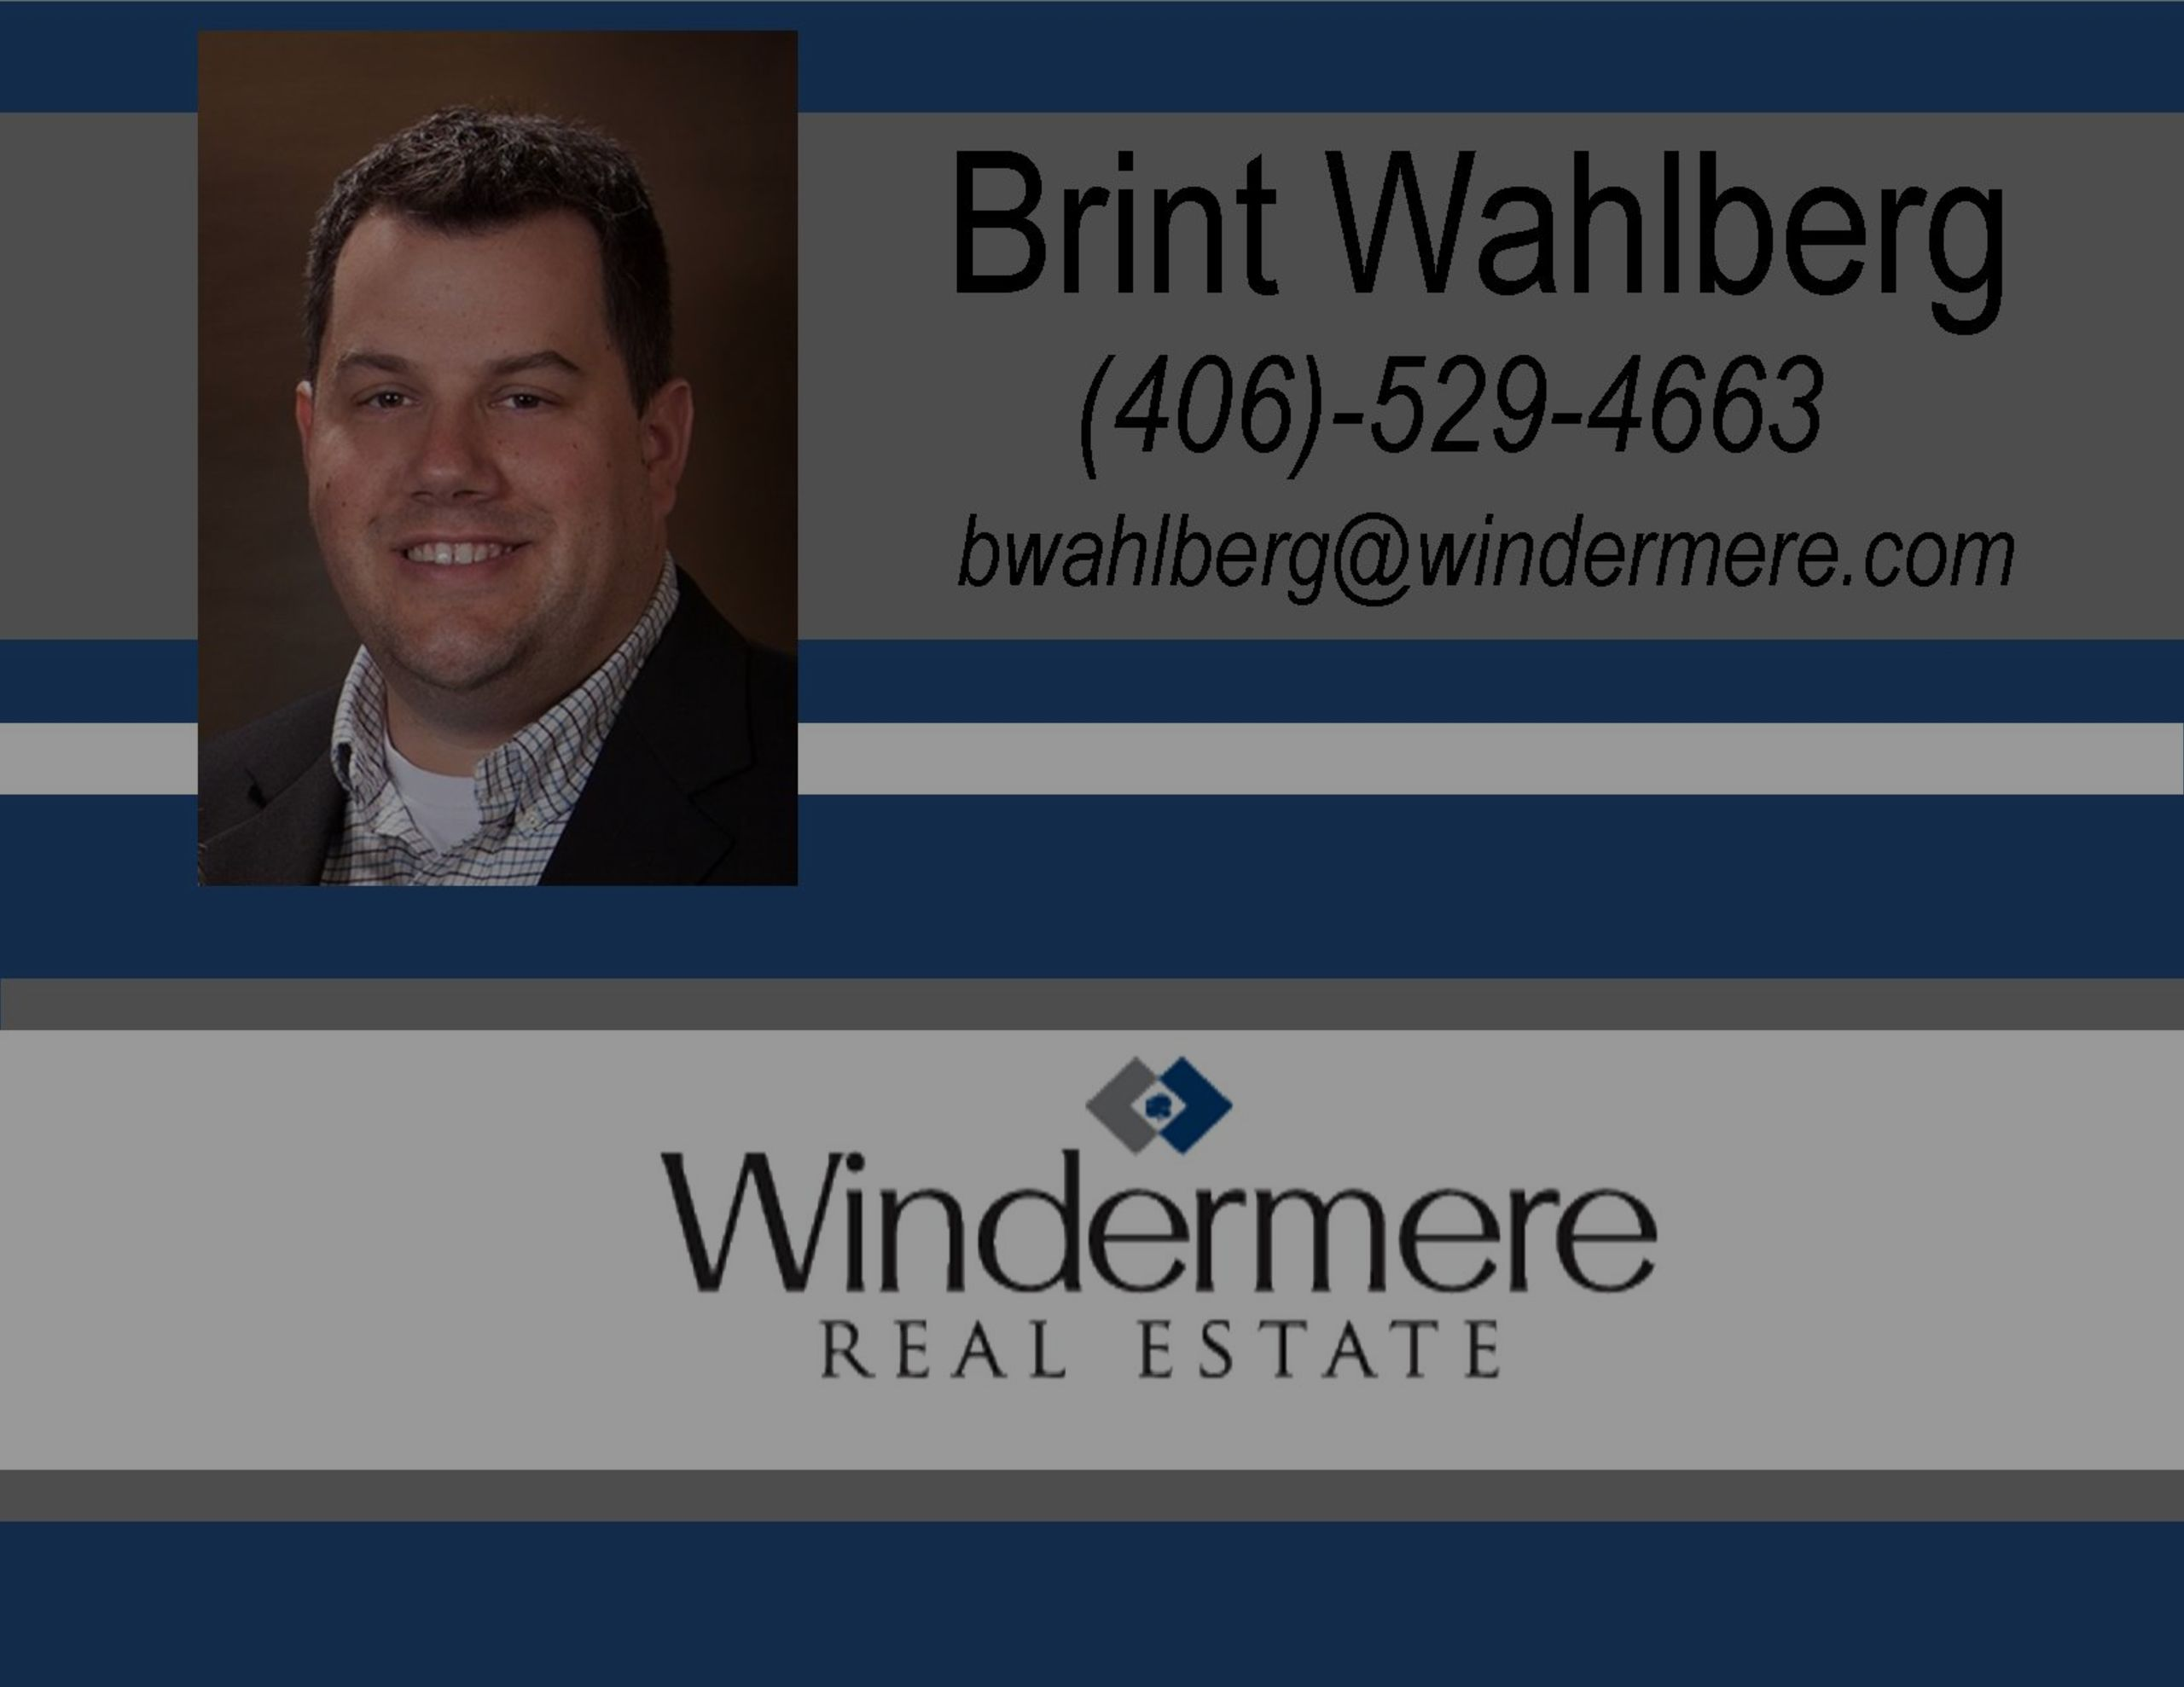 Missoula Real Estate Today with guest speaker Brint Wahlberg!